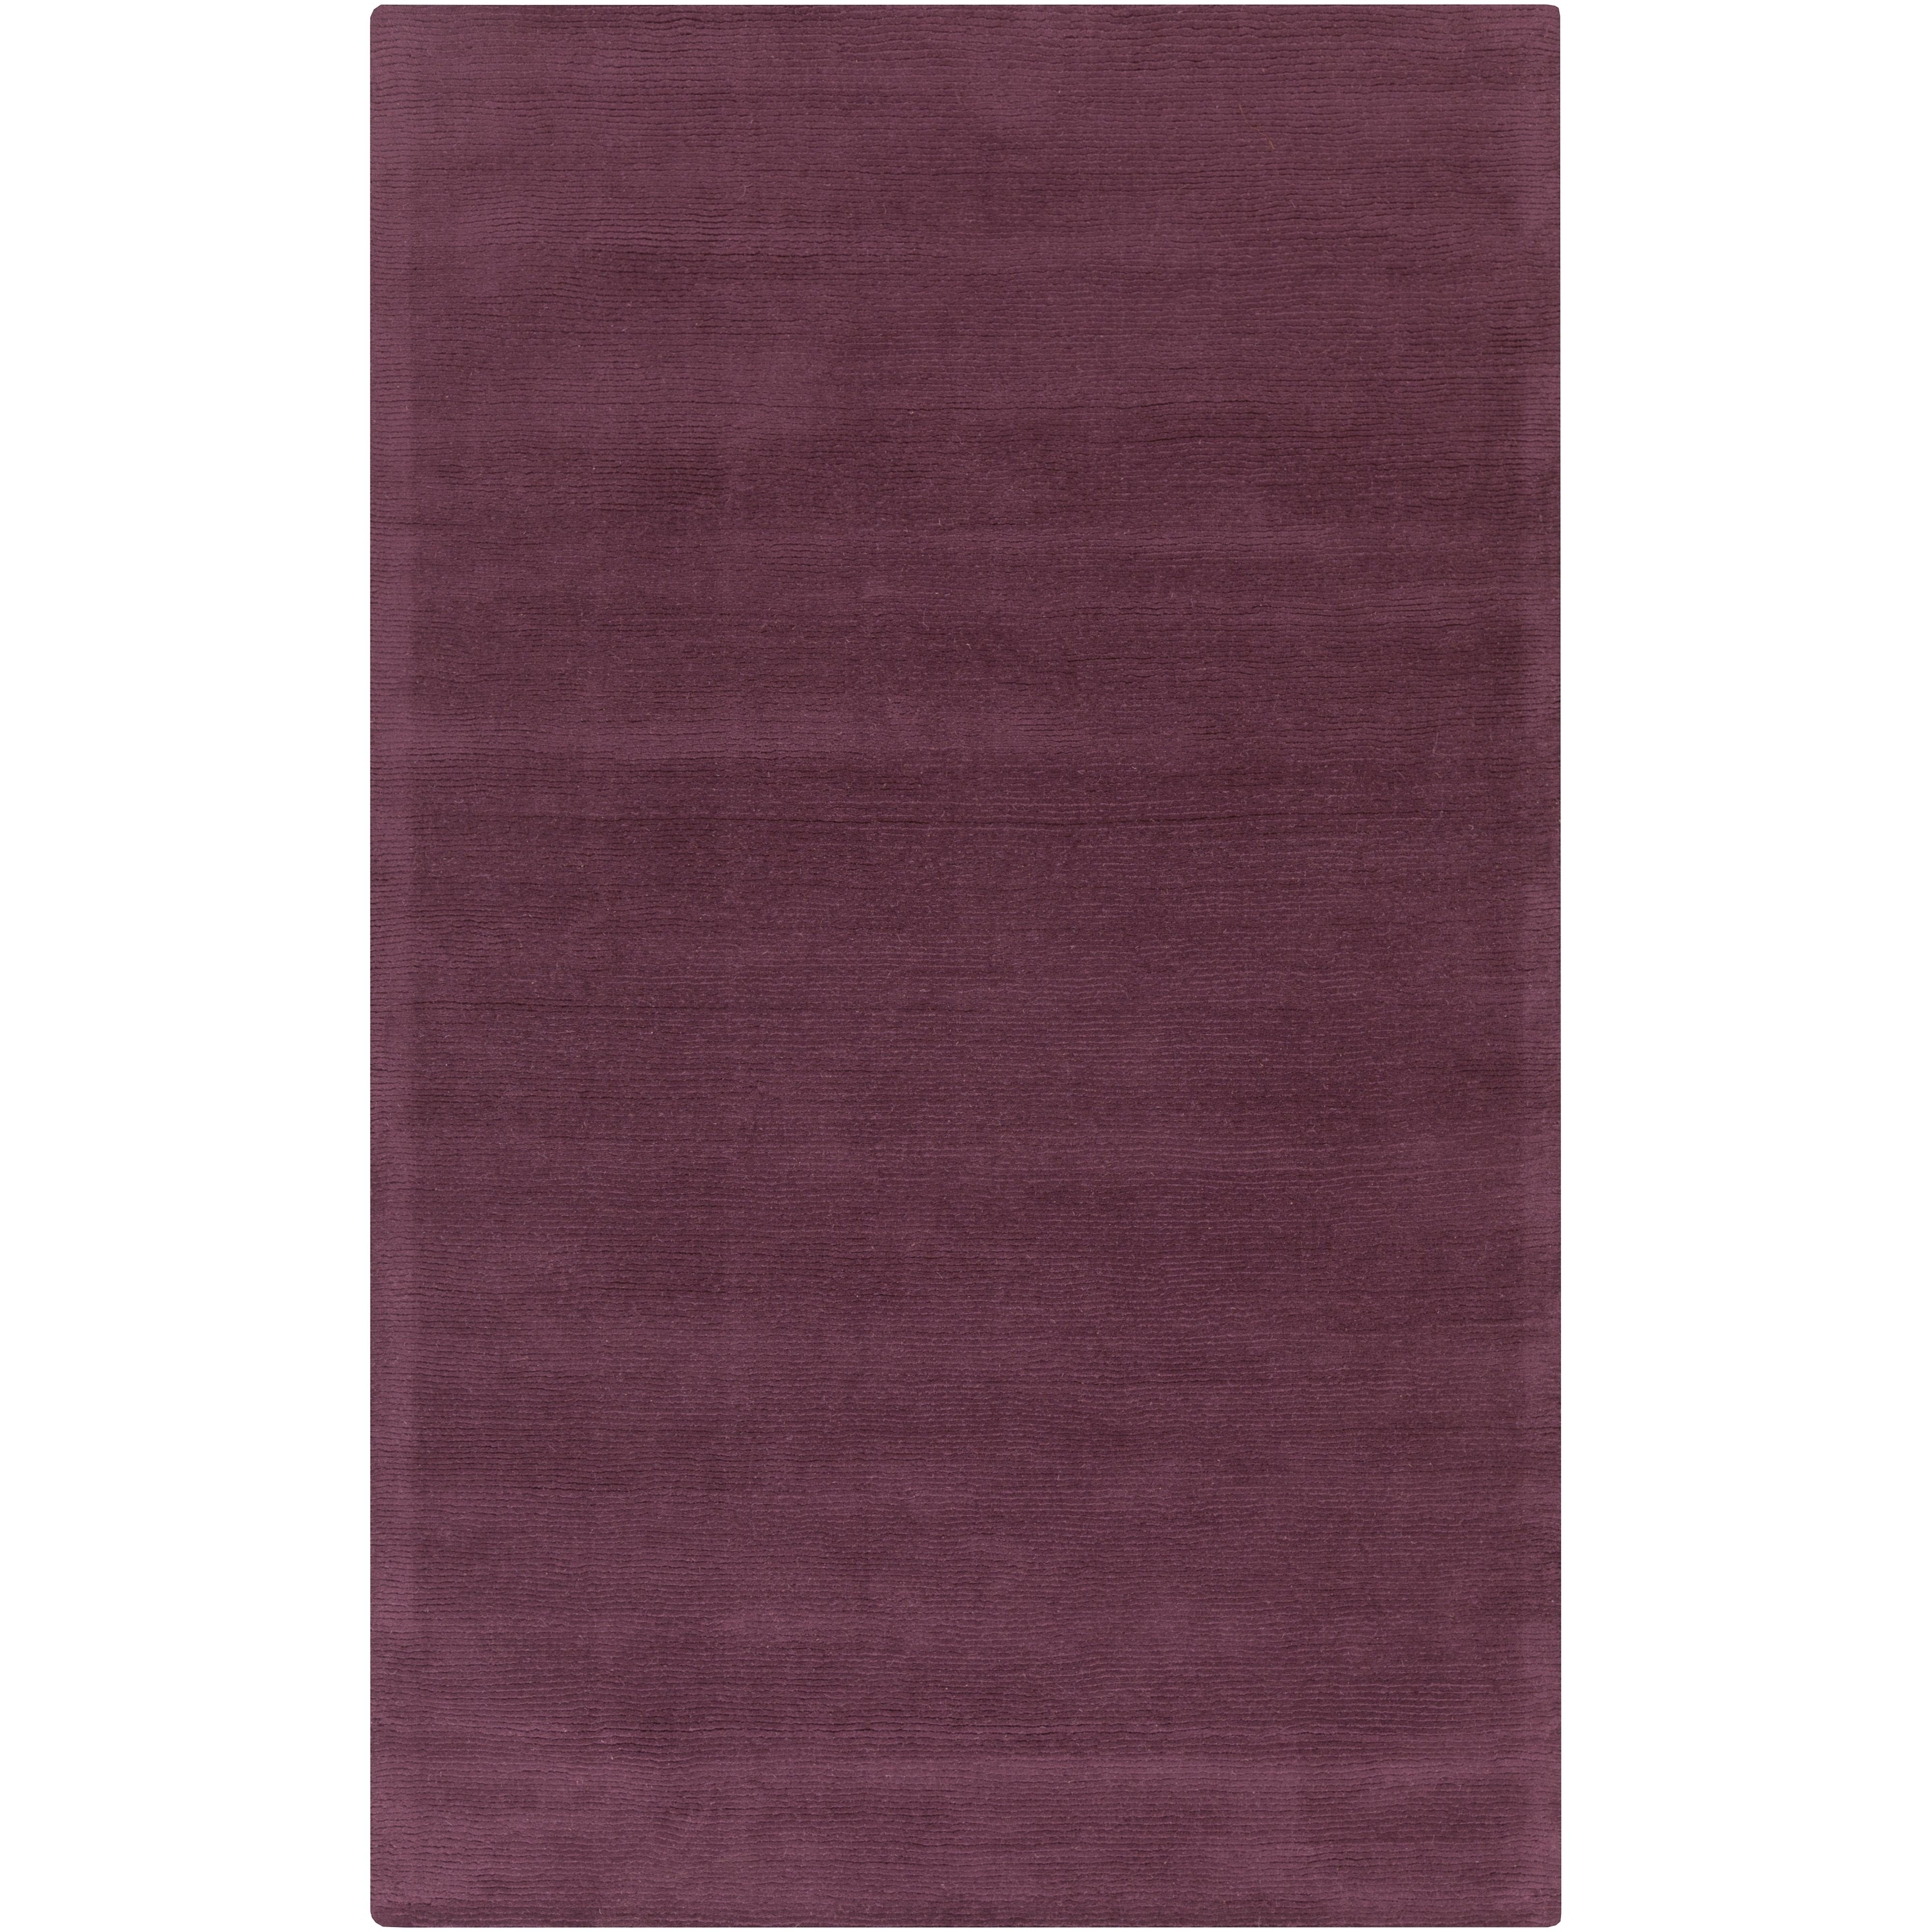 "Surya Mystique 7'6"" x 9'6"" - Item Number: M5326-7696"